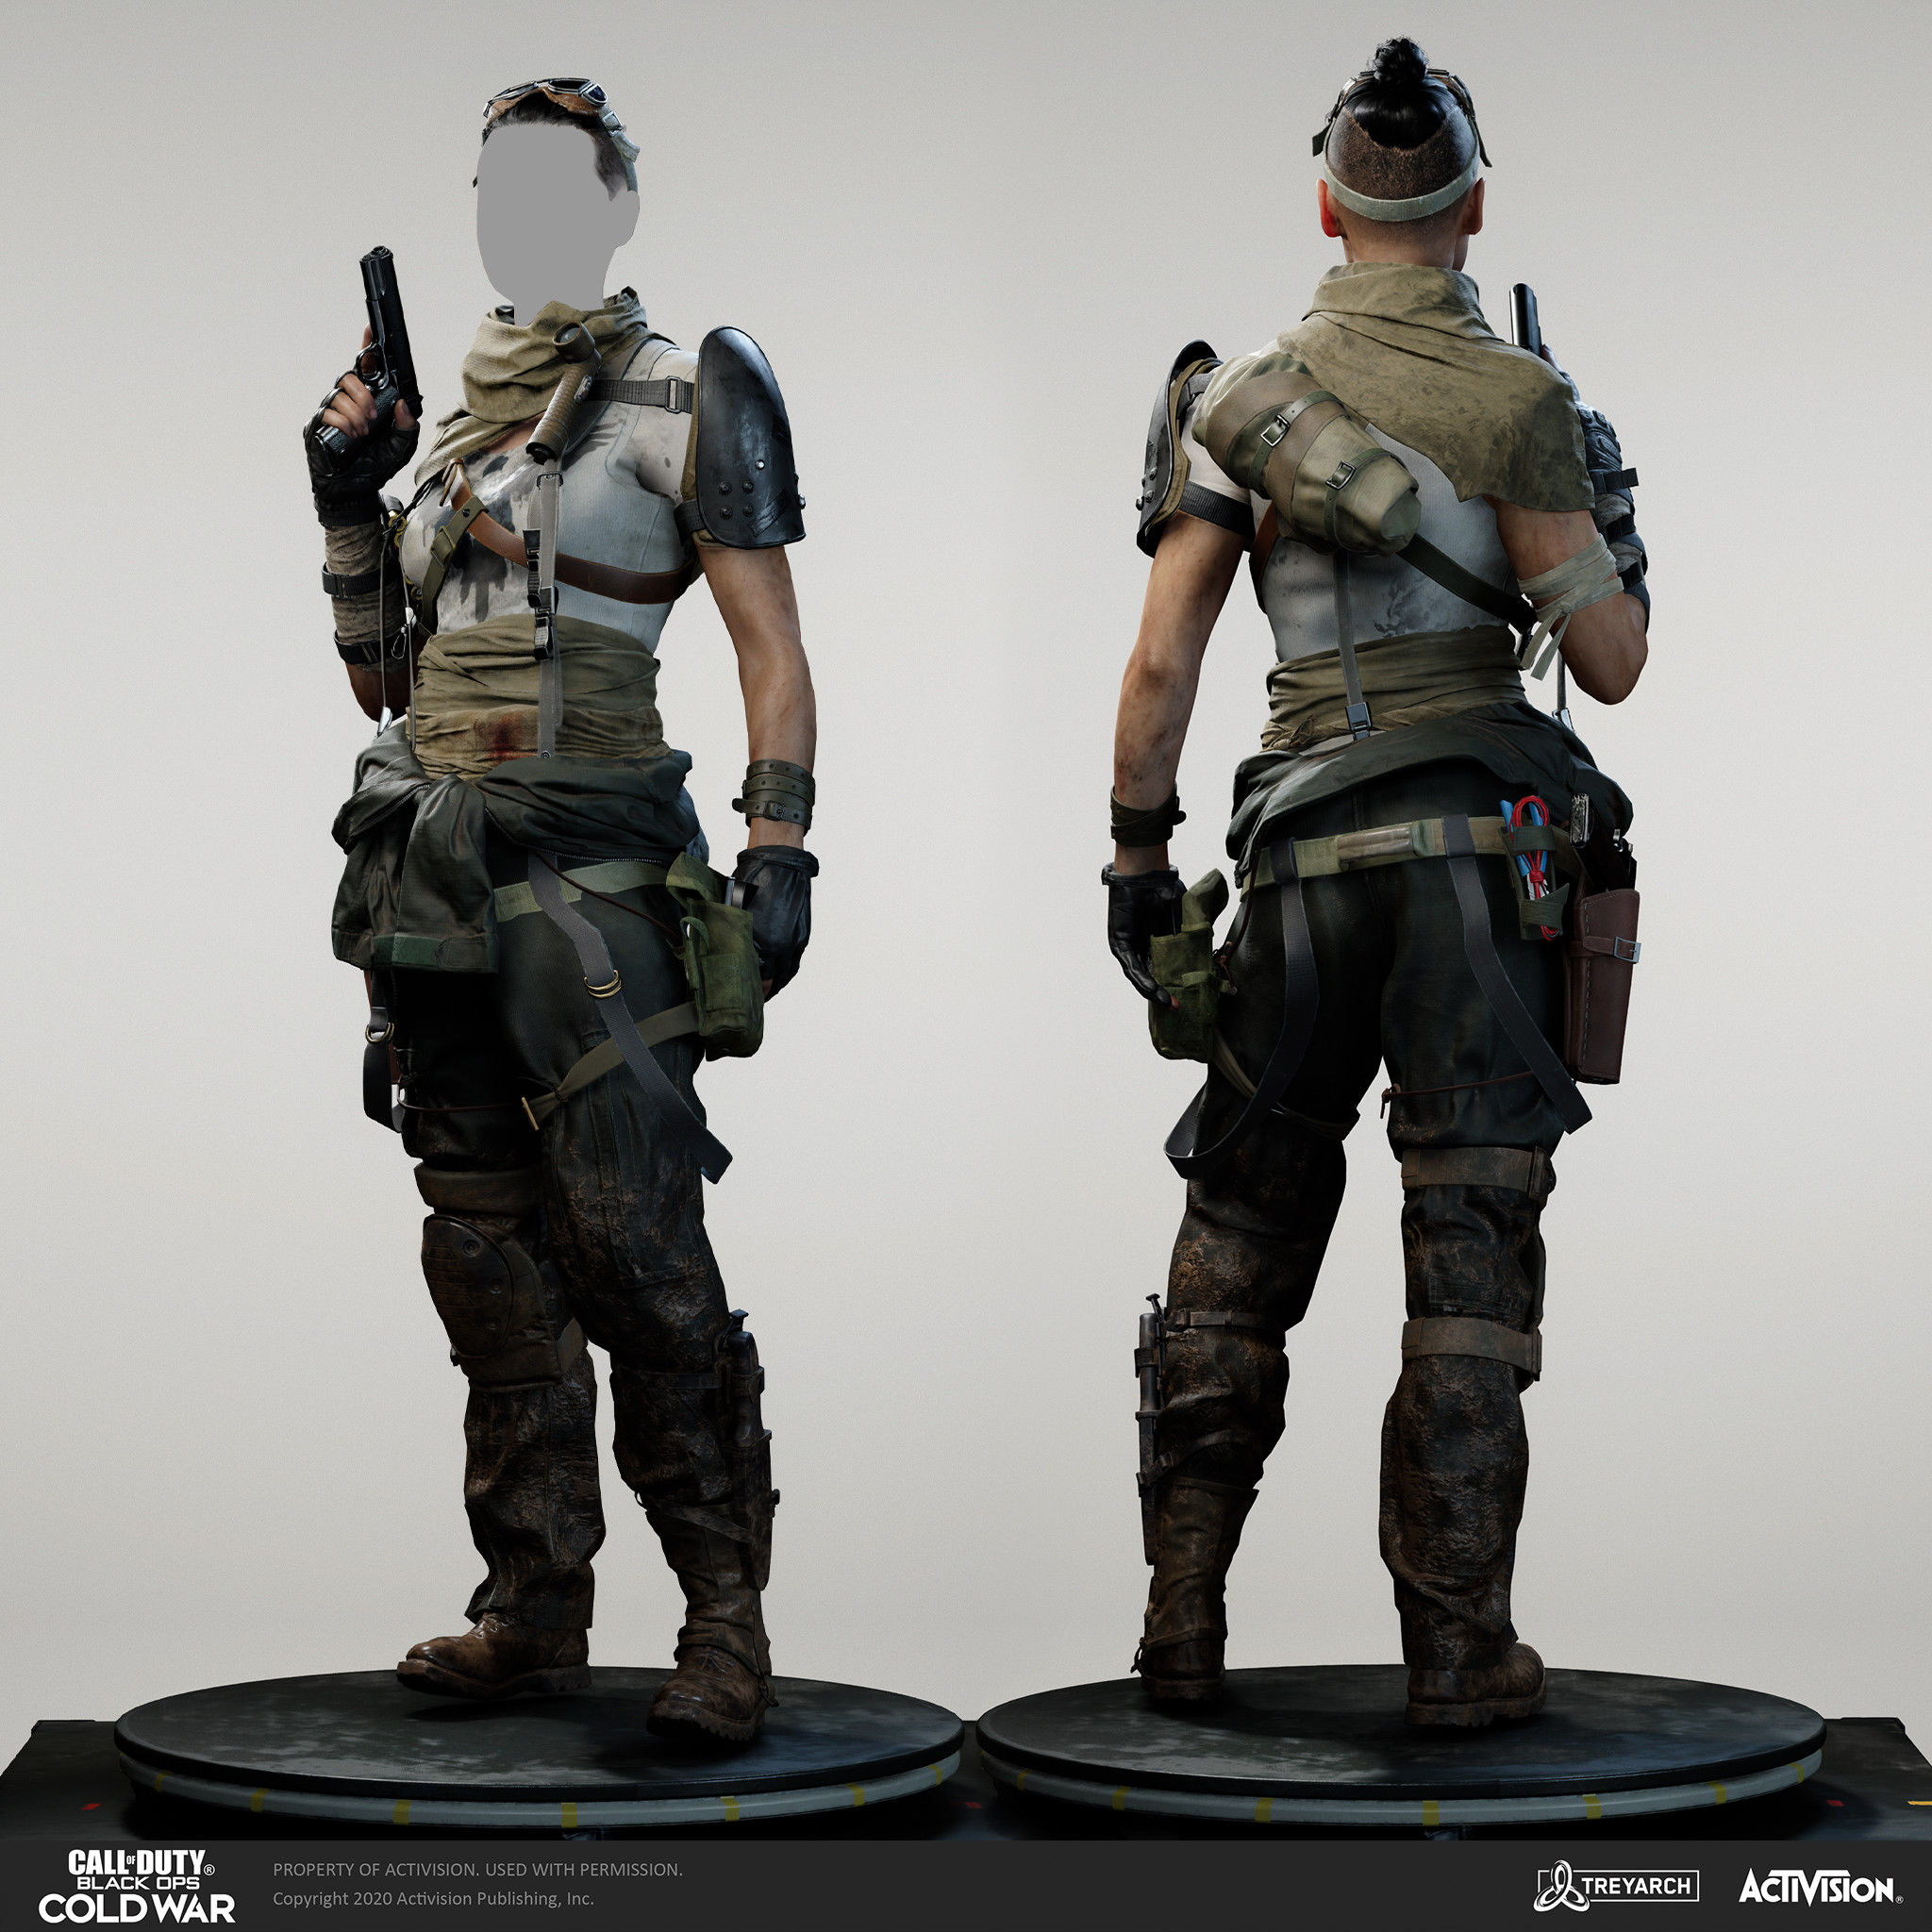 Helen Park - Bounty Hunter. I was responsible for design, model, textures/materials. Individual models/bakes used on the character were created by the Treyarch, SHG, Raven, and OS teams. Head and hair model by Outsource  team, Scott Wells, Wren Cromwell.